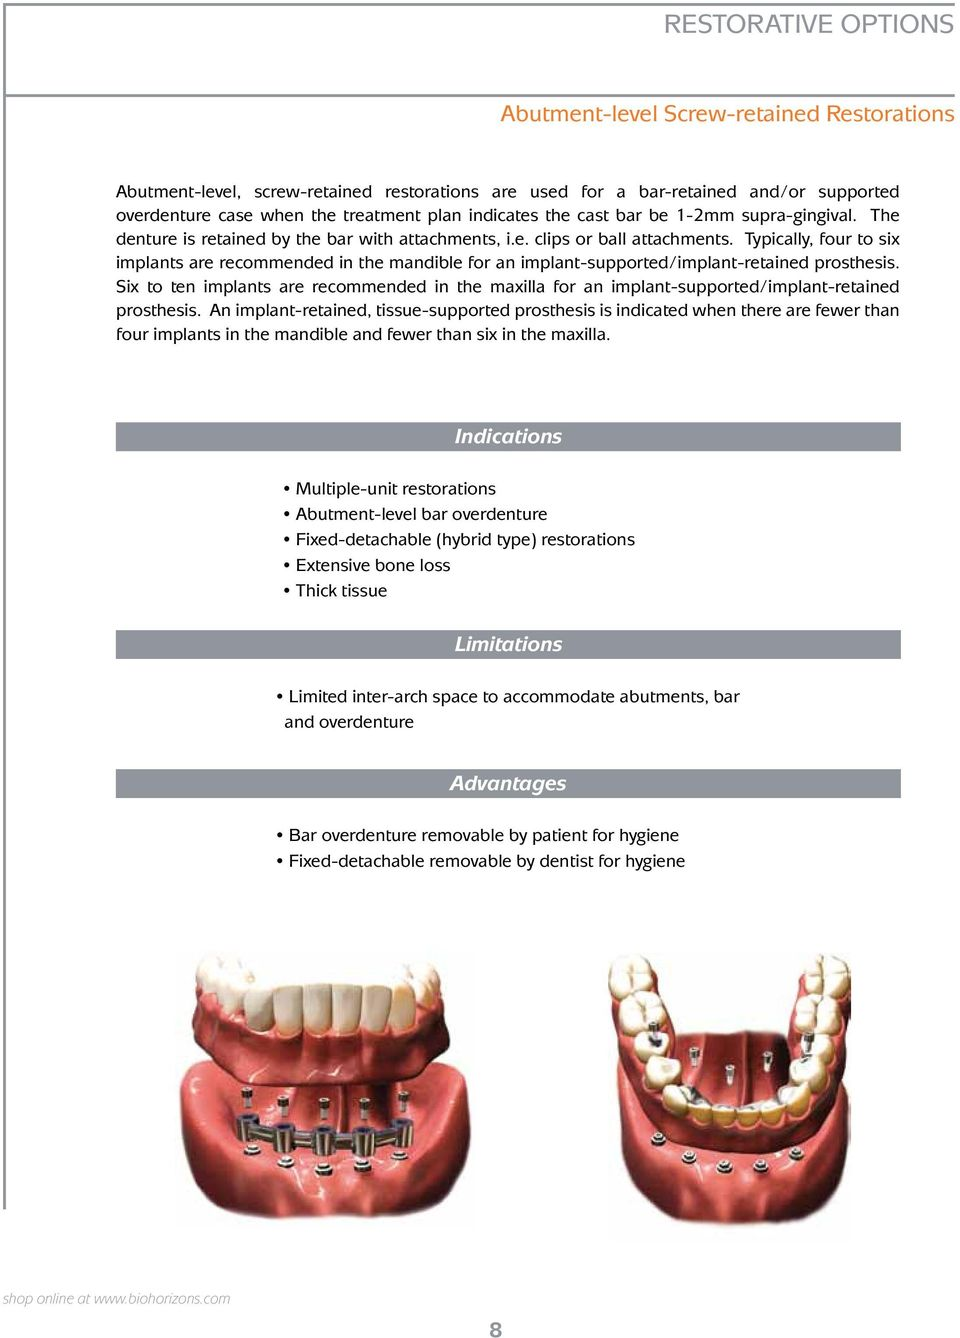 Typically, four to six implants are recommended in the mandible for an implant-supported/implant-retained prosthesis.